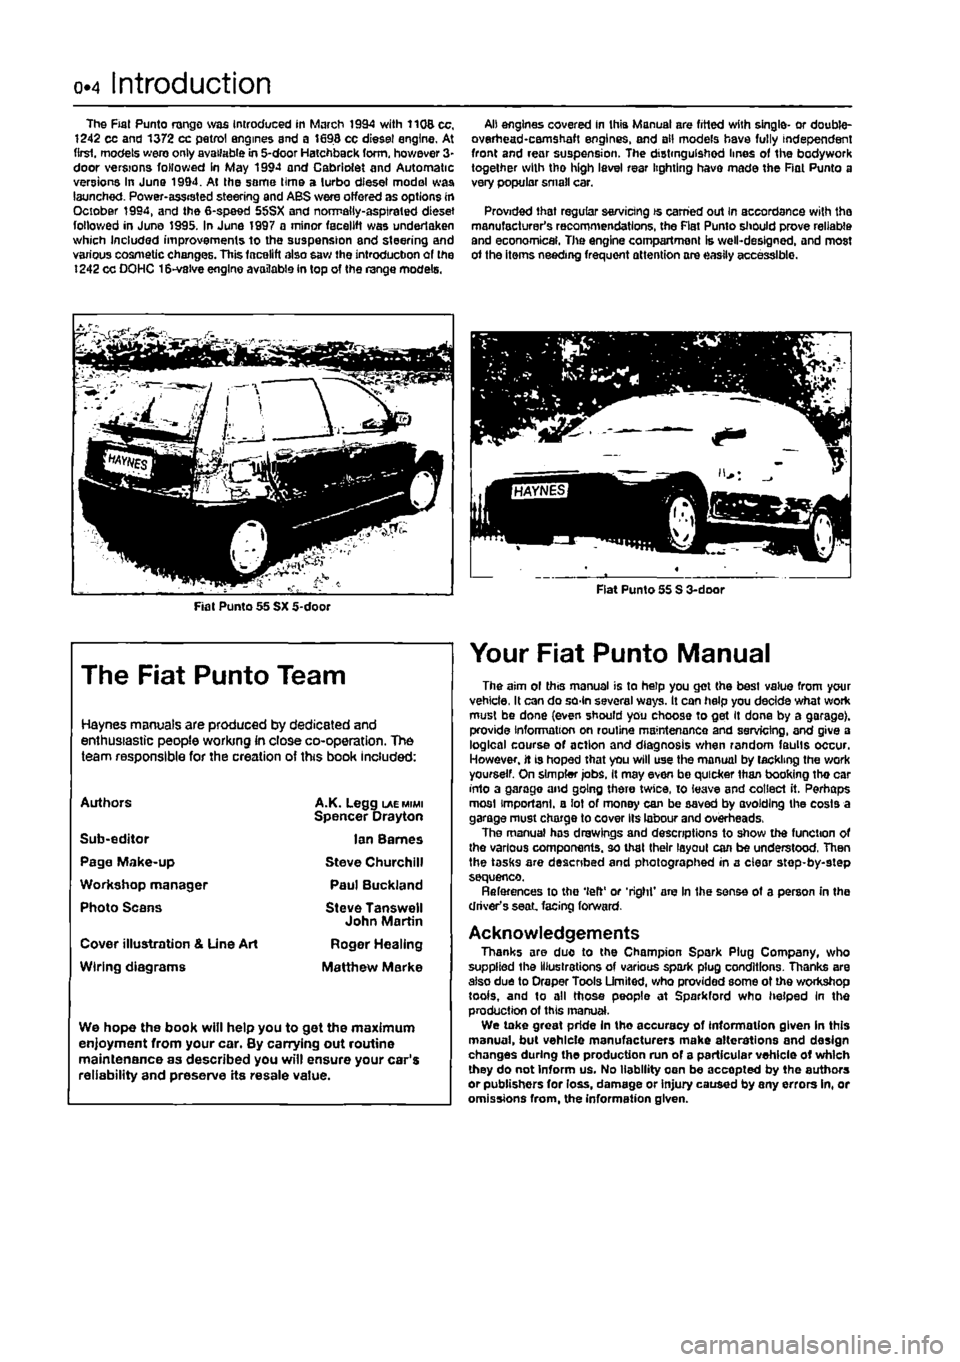 g workshop manual, page 5